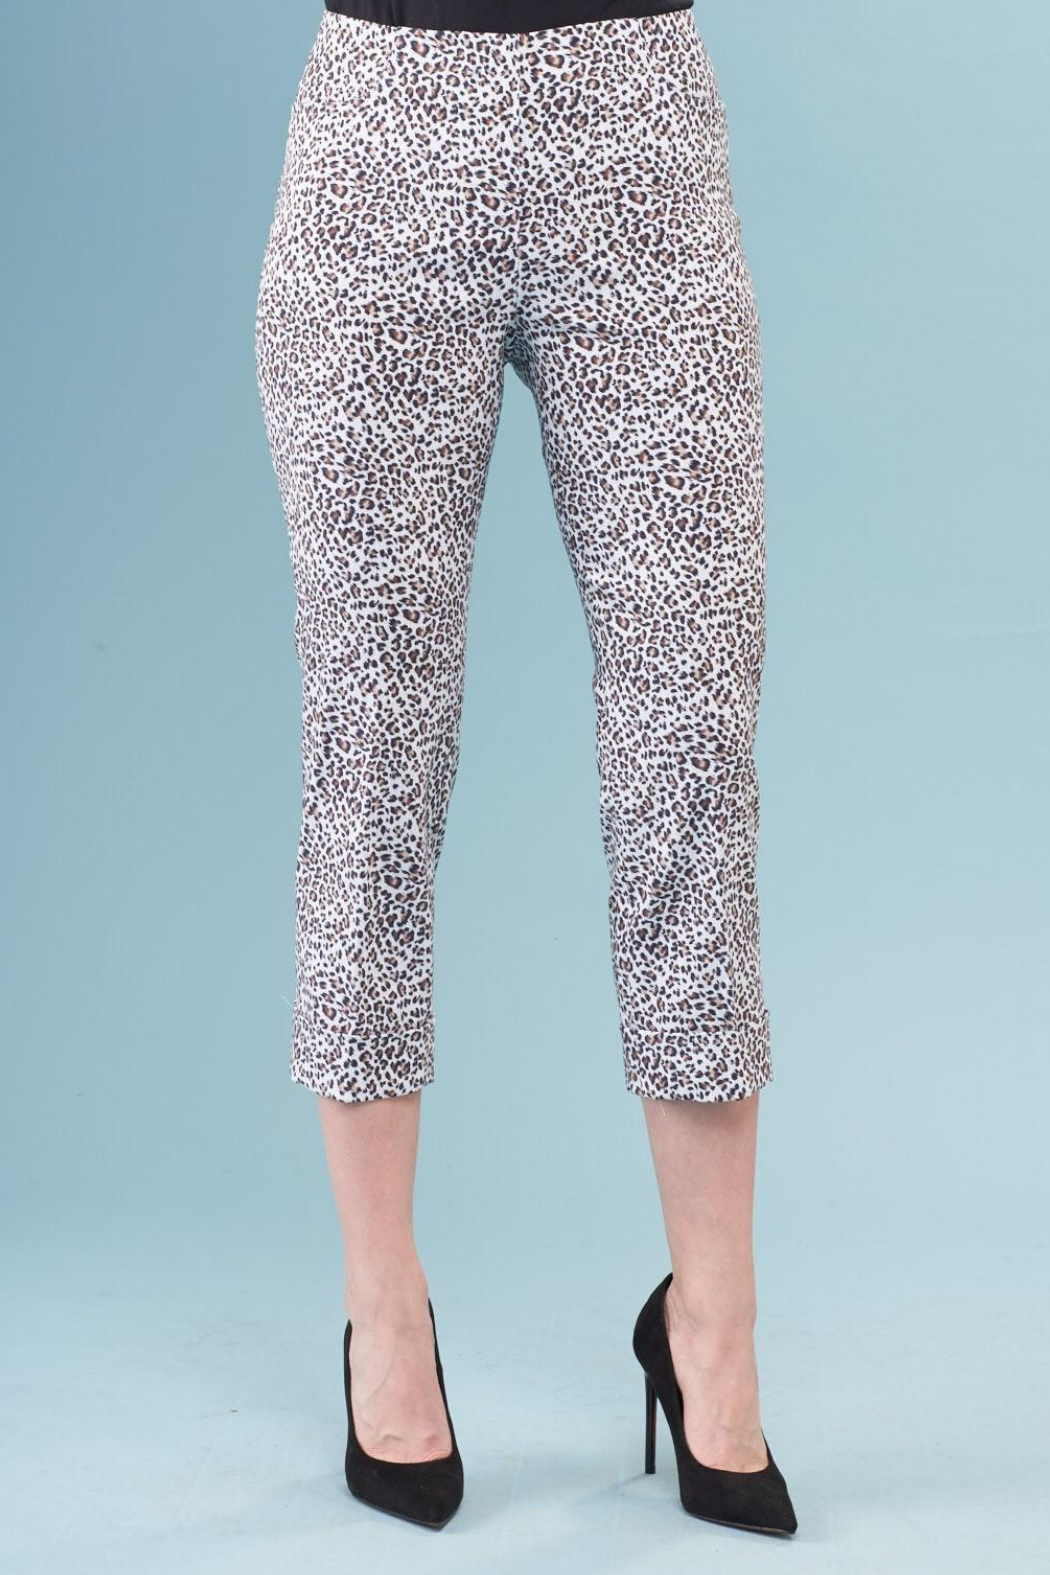 INSIGHT NYC Brushed Leopard Cuffed Pant - Main Image